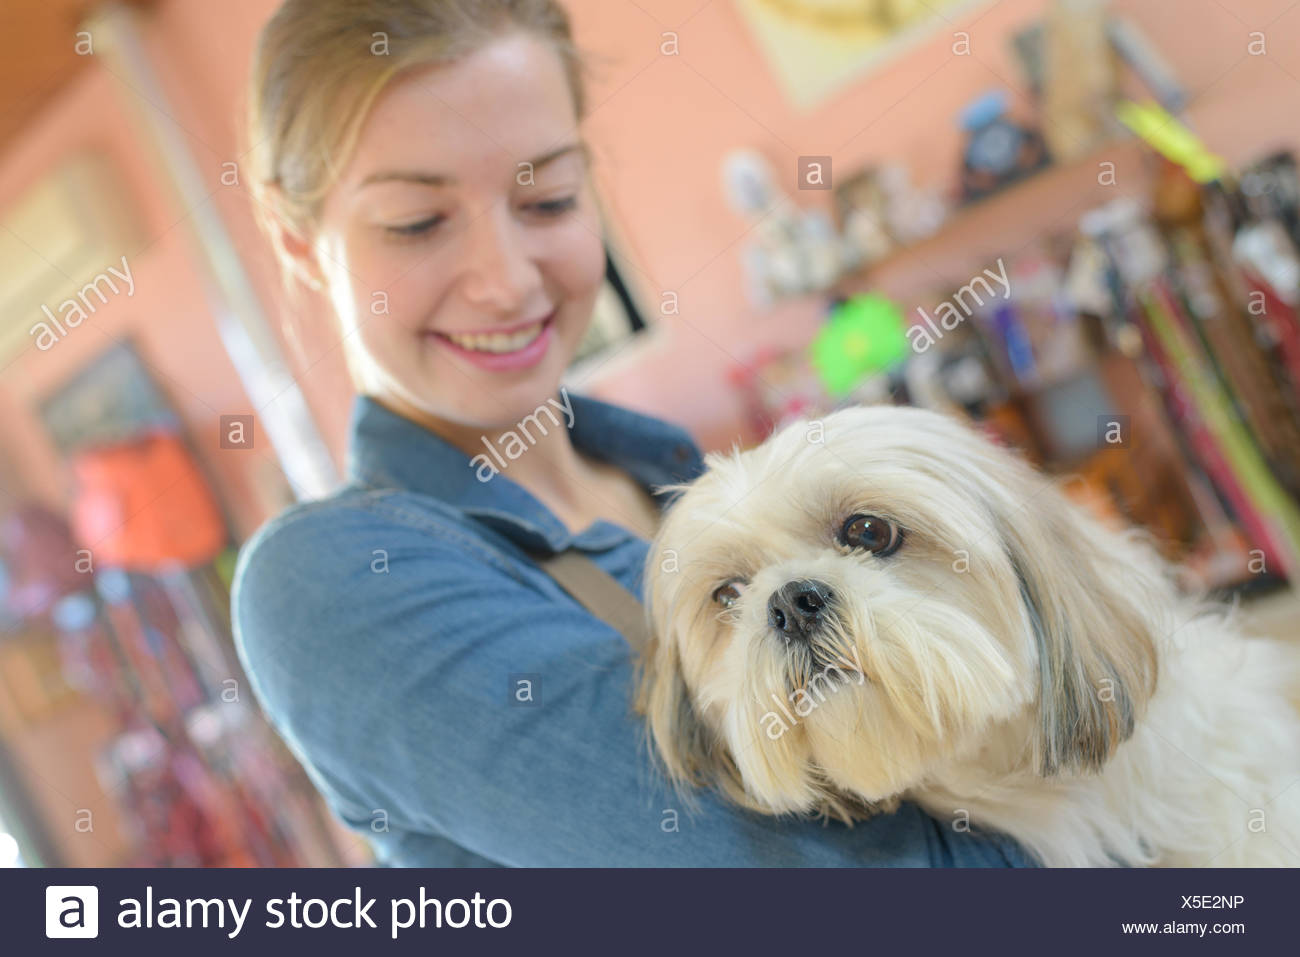 Cut Dog And Vet Assistant Stock Photo 278748674 Alamy